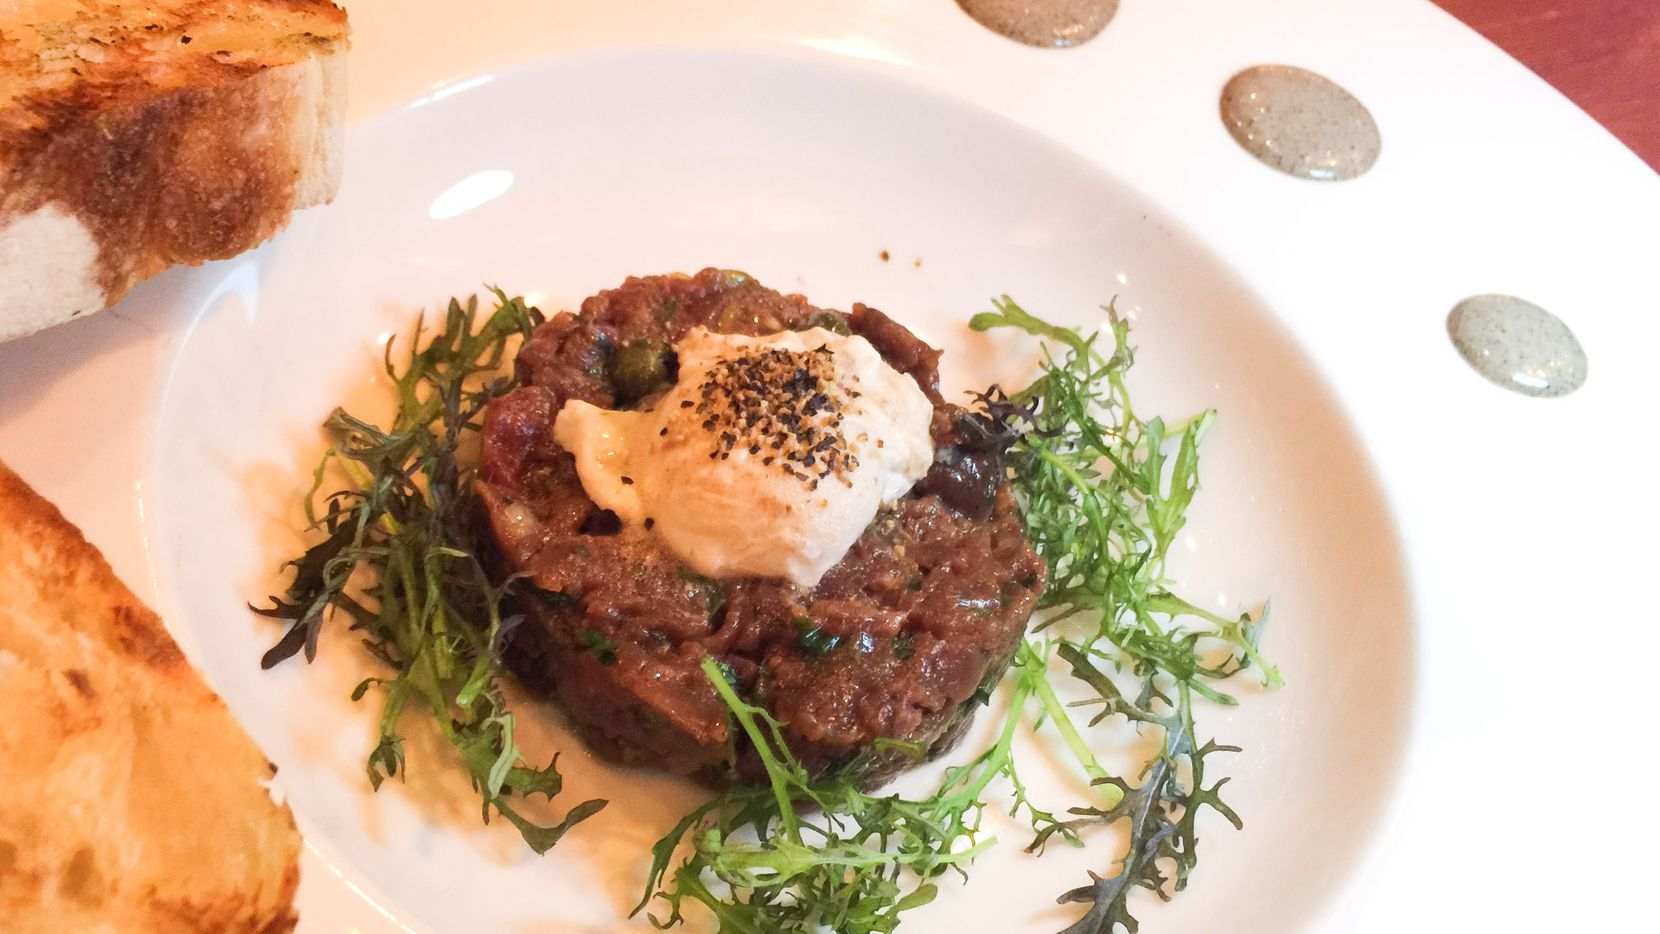 """Chef Nick Amoriello's venison tartare at Kitchen LTO. Amoriello is in charge of the kitchen for a sixth-month stint chef at the """"permanent pop-up"""" restaurant in Trinity Groves. Game meats such as antelope and rabbit are spotlighted on his menu."""